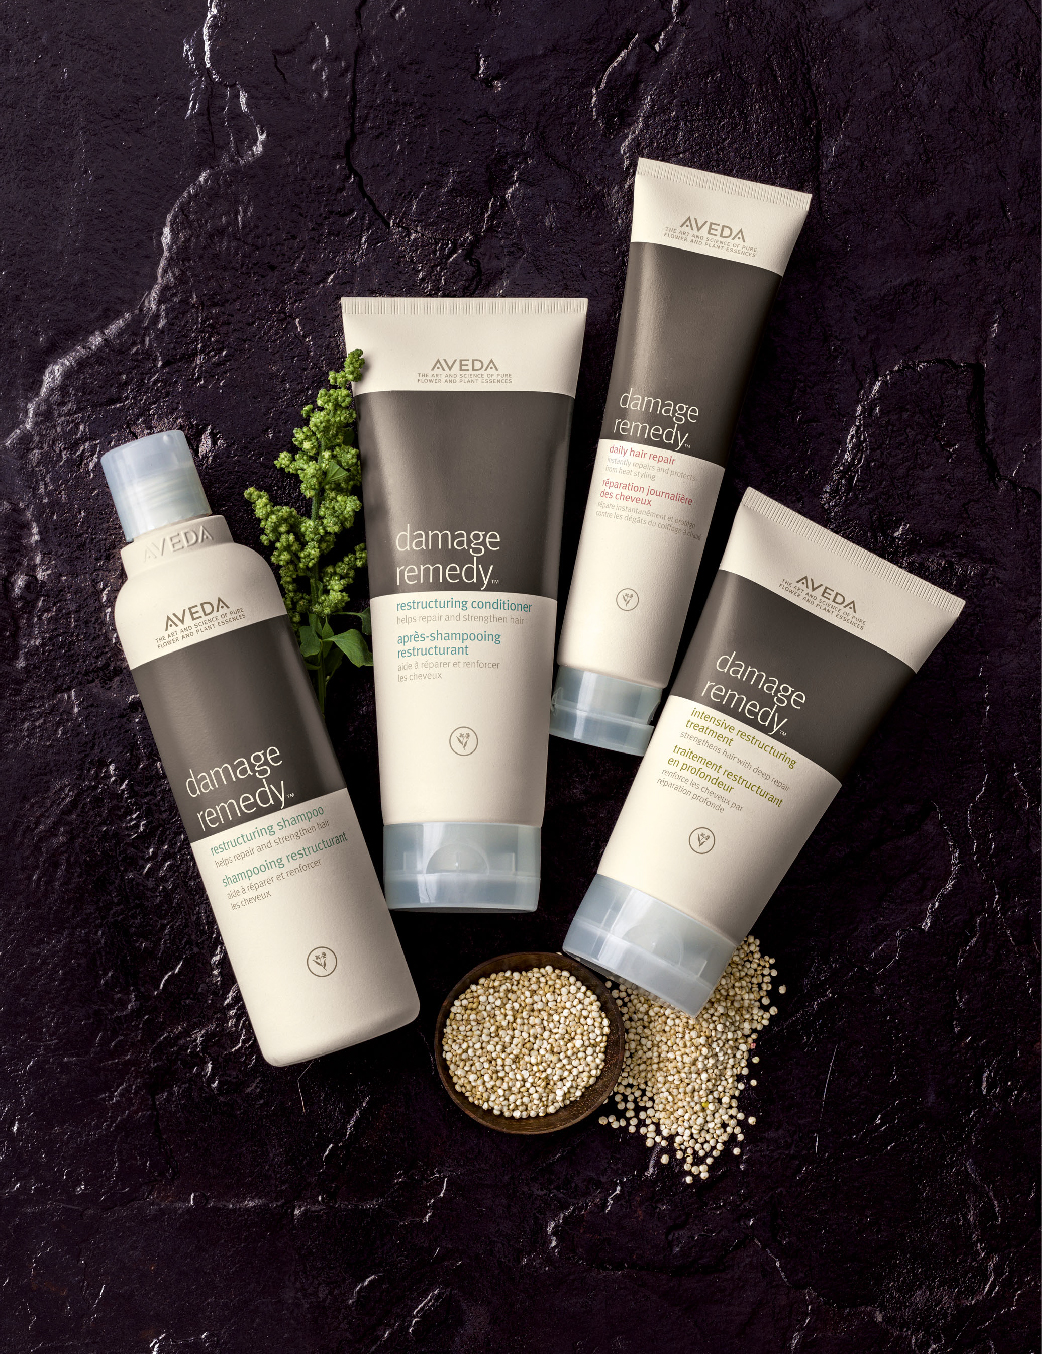 AVEDA Damage Remedy™ range...